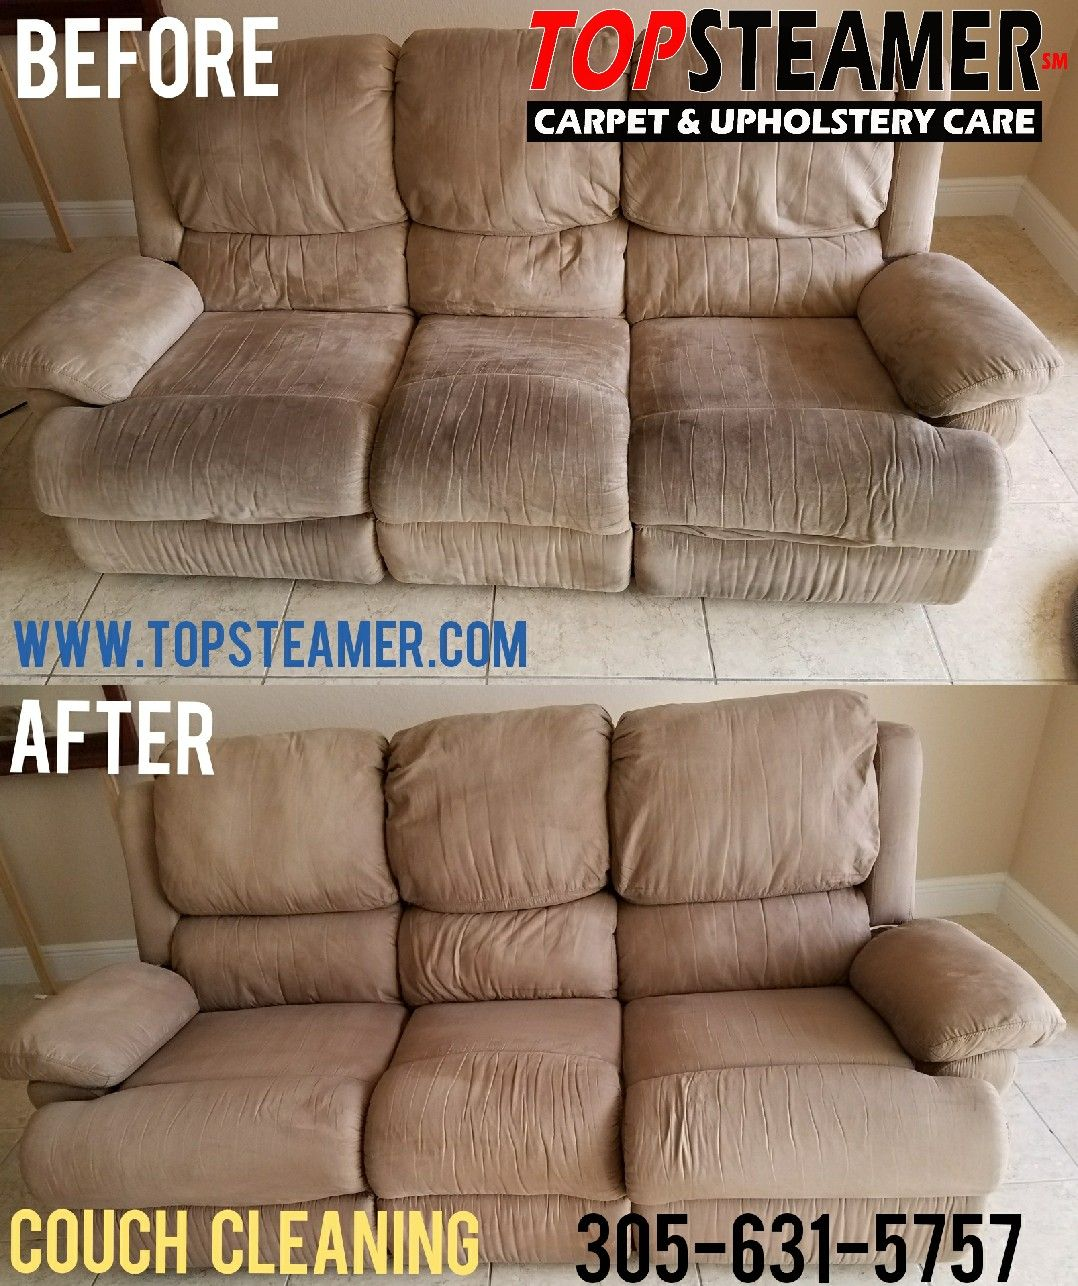 Beau Couch Cleaning Miami Gardens 305 631 5757 Https://www.topsteamer